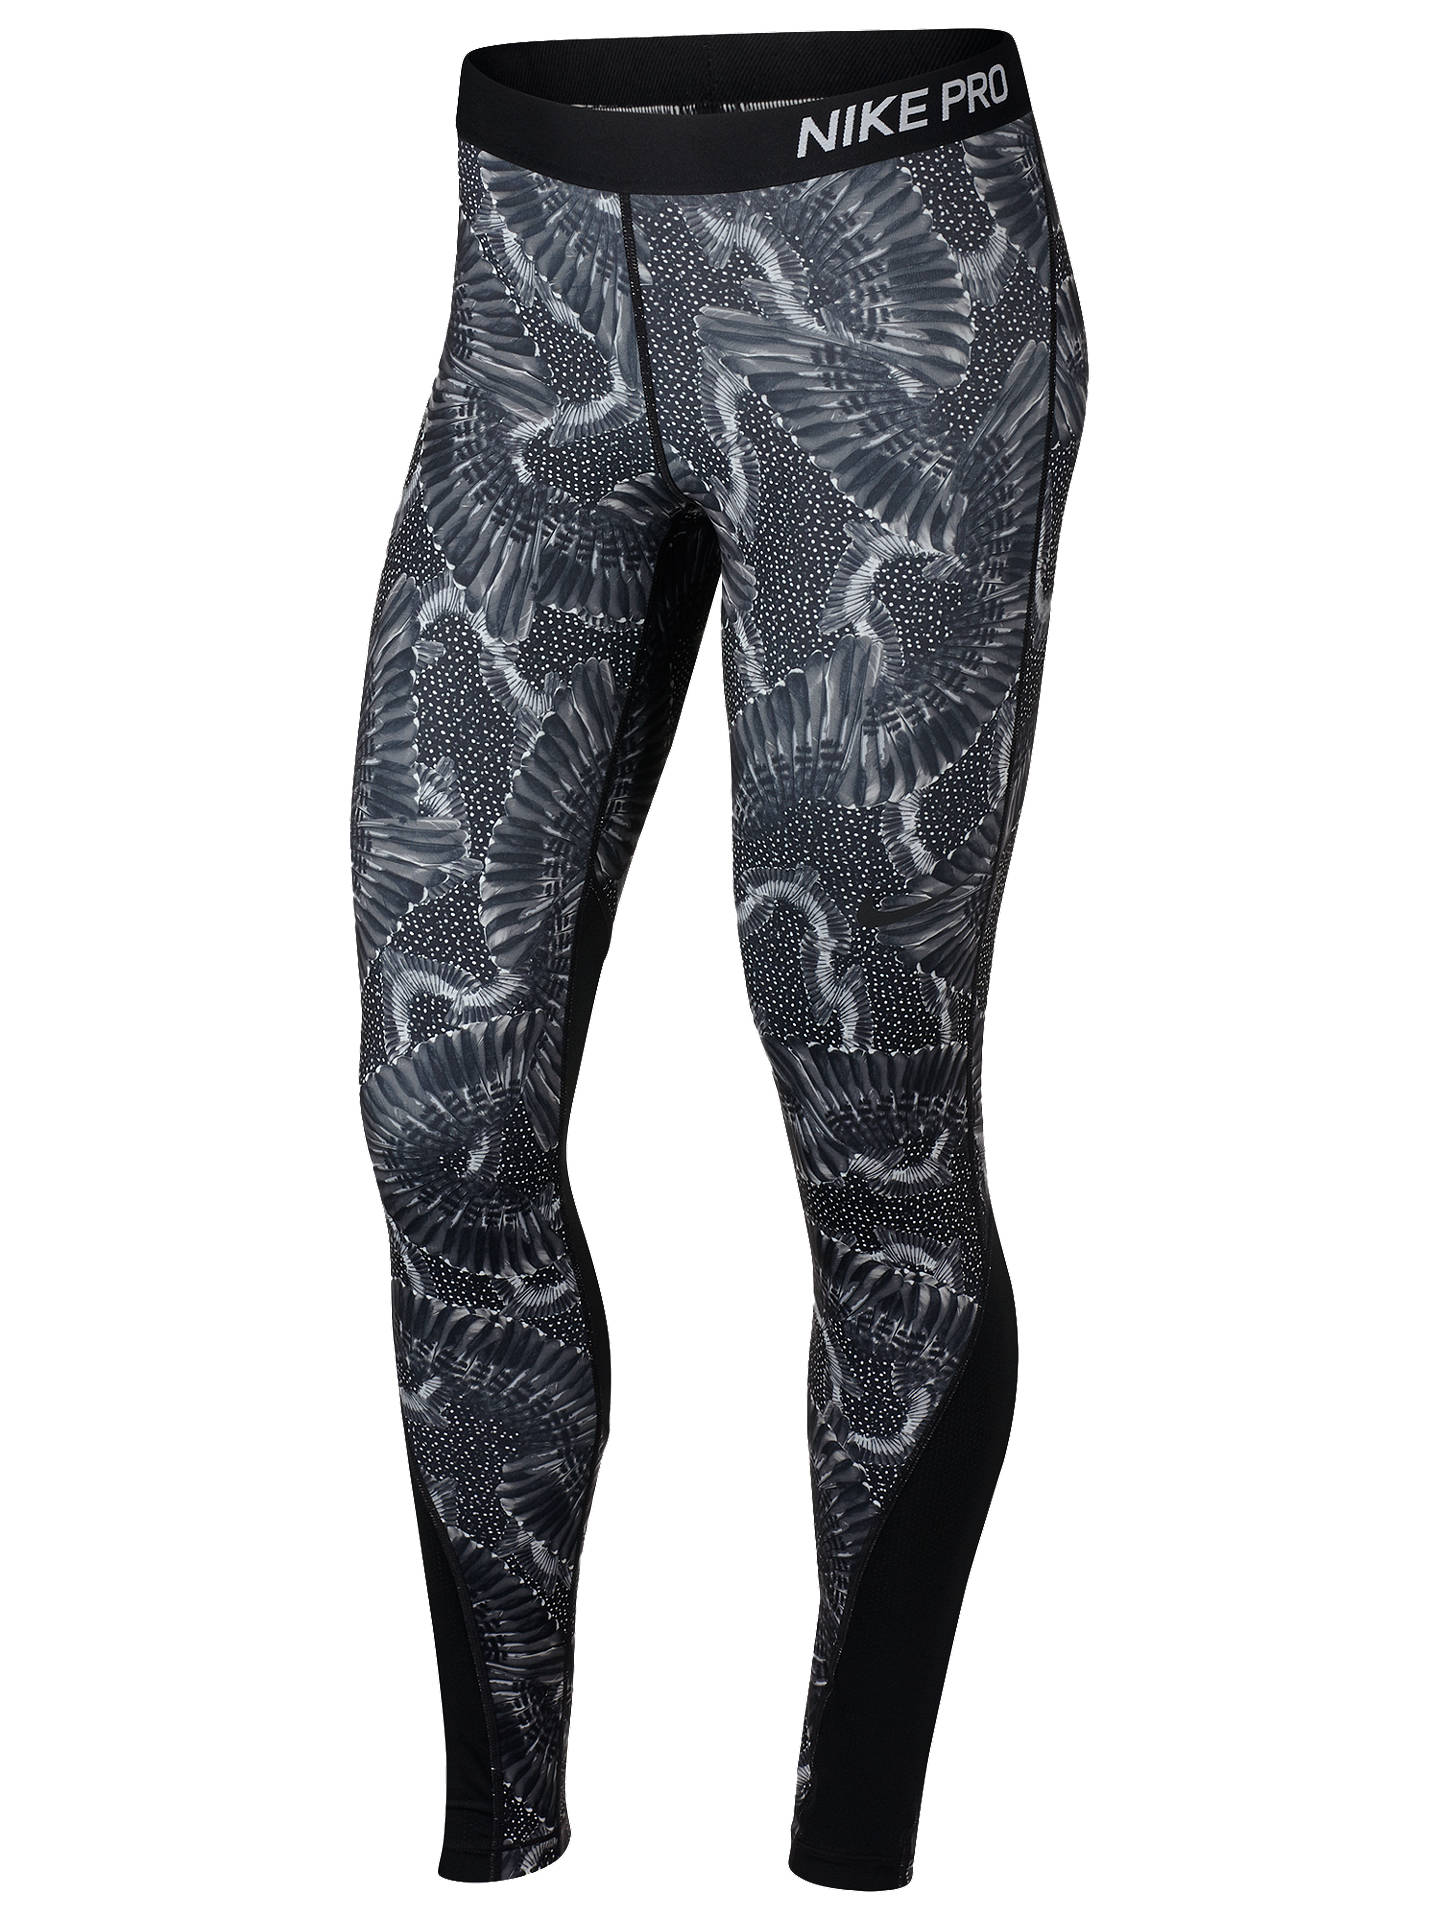 online store a07b2 0ae22 Buy Nike Pro Women s Printed Training Tights, Wolf Grey Black, XS Online at  ...